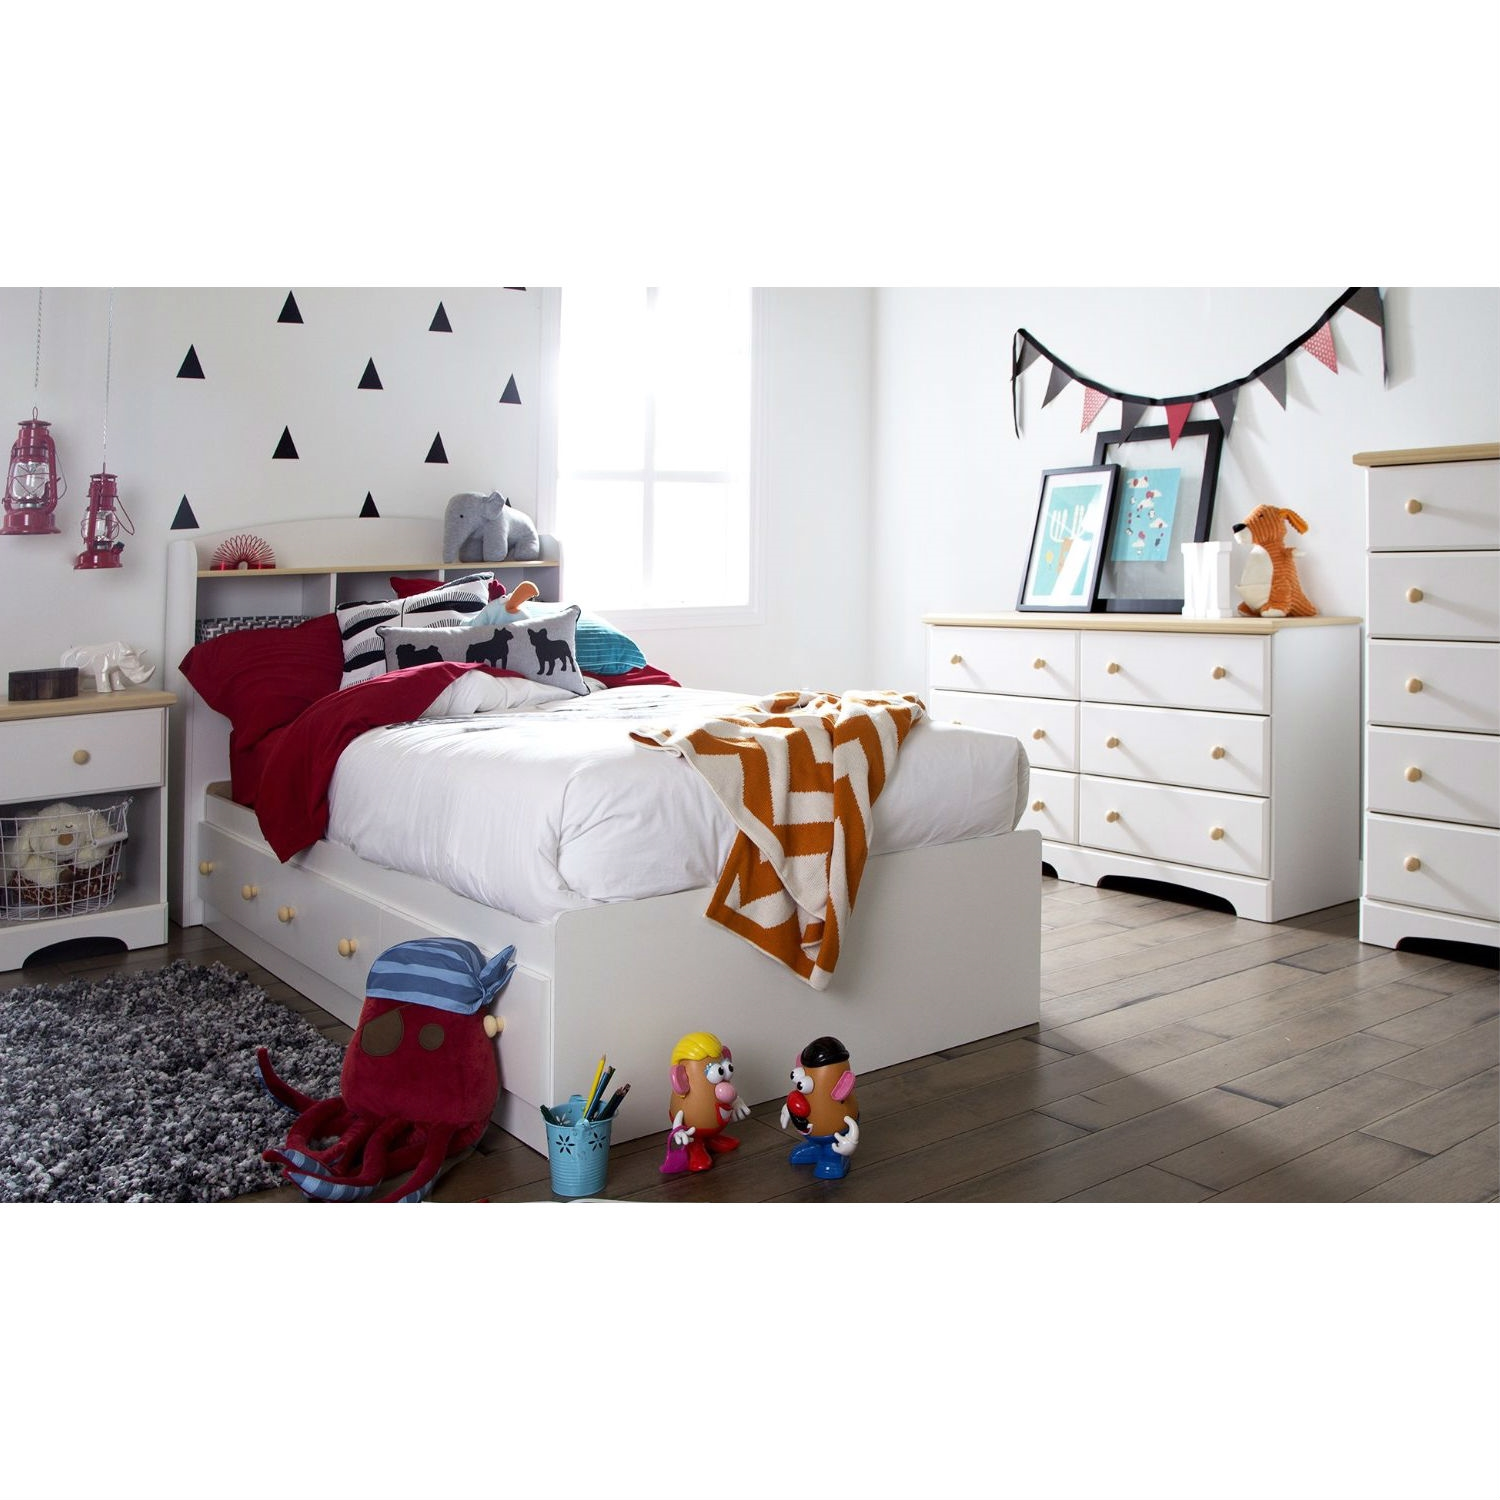 twin size white wood platform bed daybed with storage drawers ebay. Black Bedroom Furniture Sets. Home Design Ideas